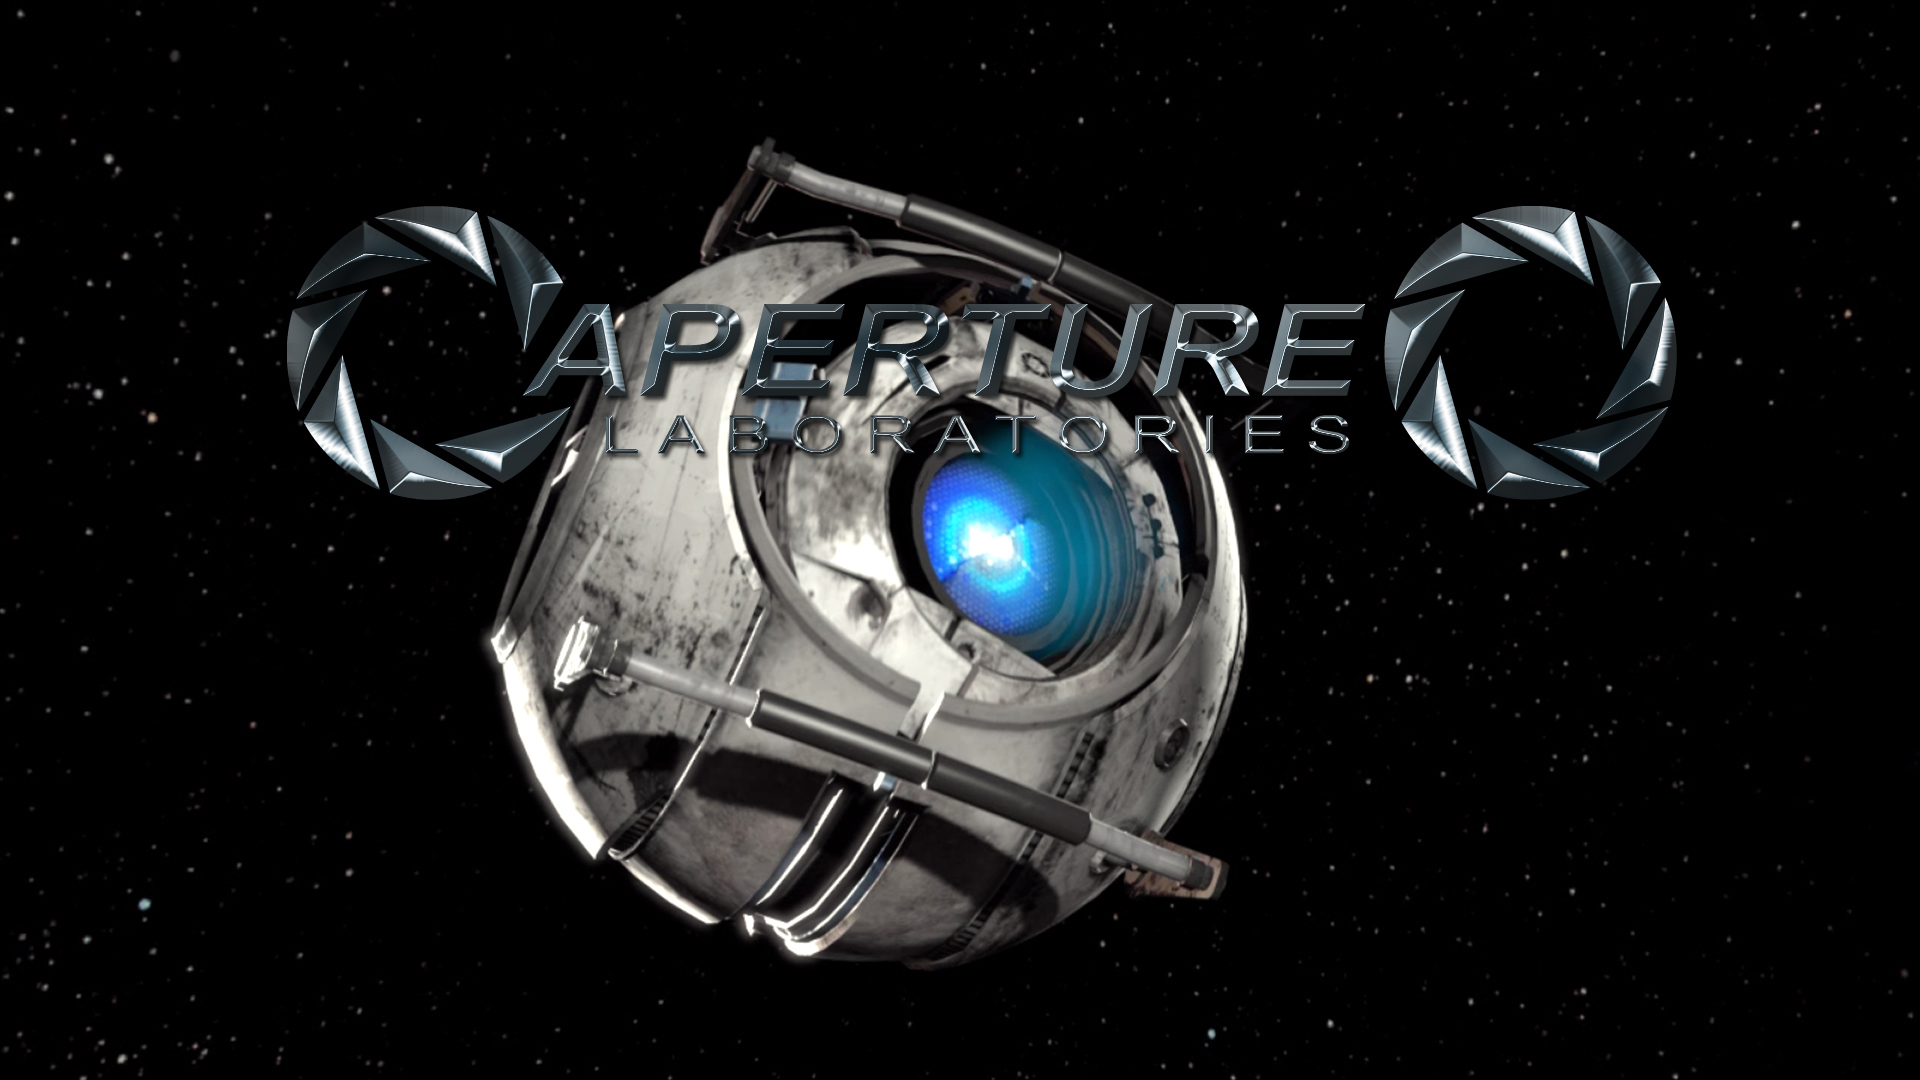 Free Download Portal 2 Wallpaper Hd Turret Portal Aperture